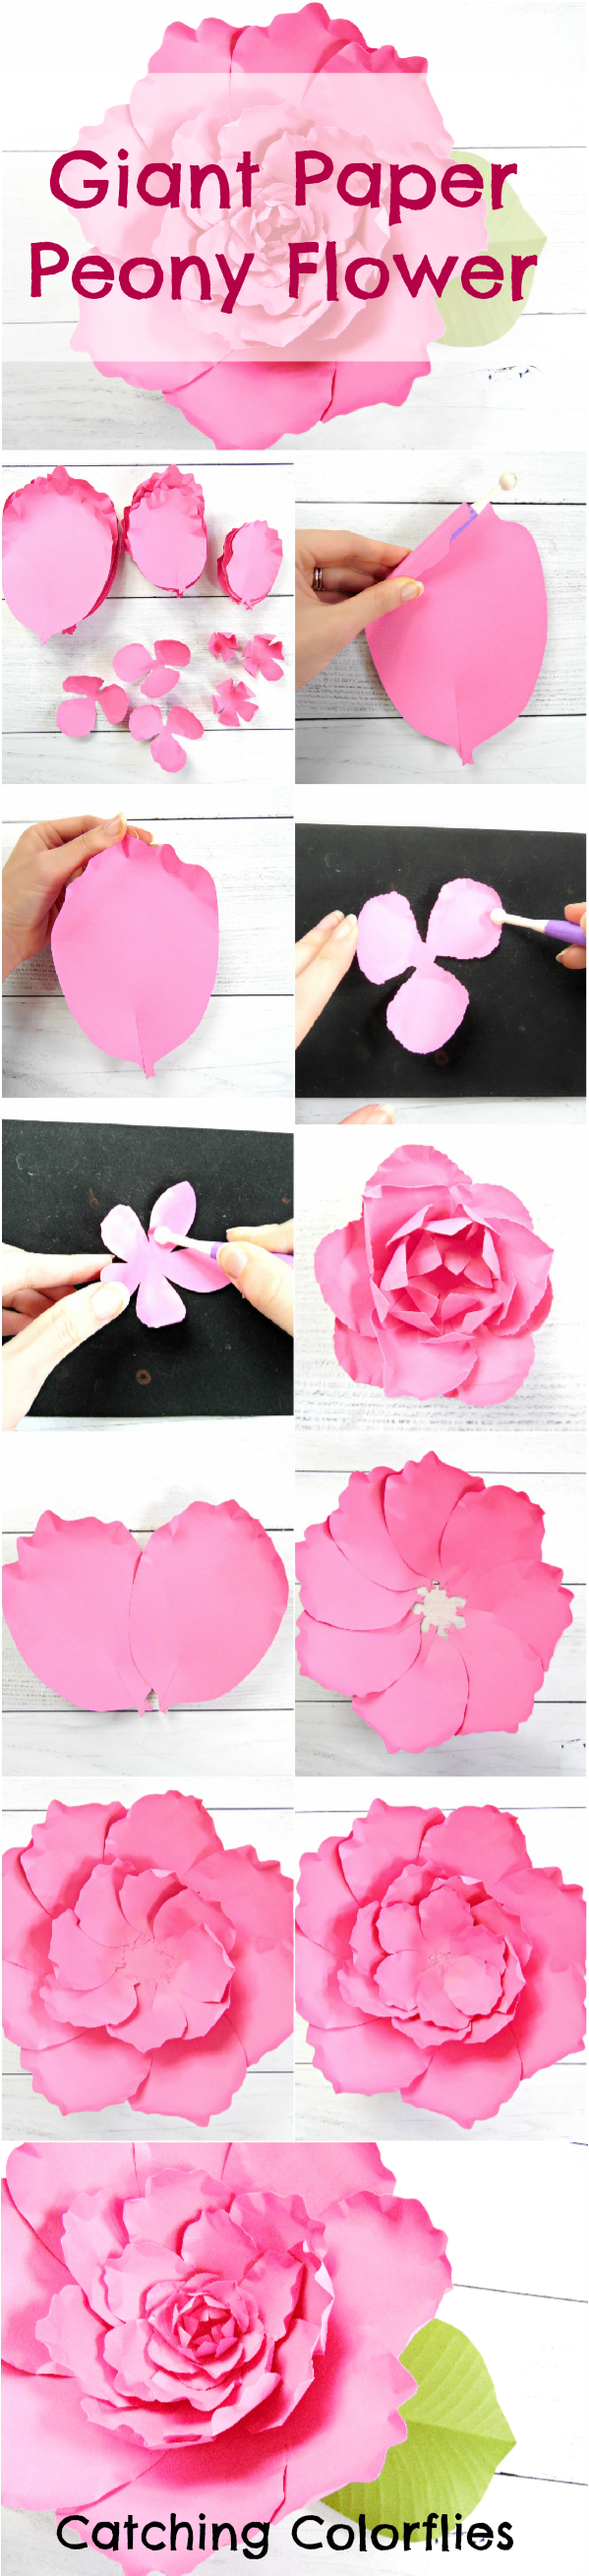 Giant paper peony templates paper peonies flower template and giant paper flower peony how to make large paper peony flowers printable flower templates dhlflorist Image collections